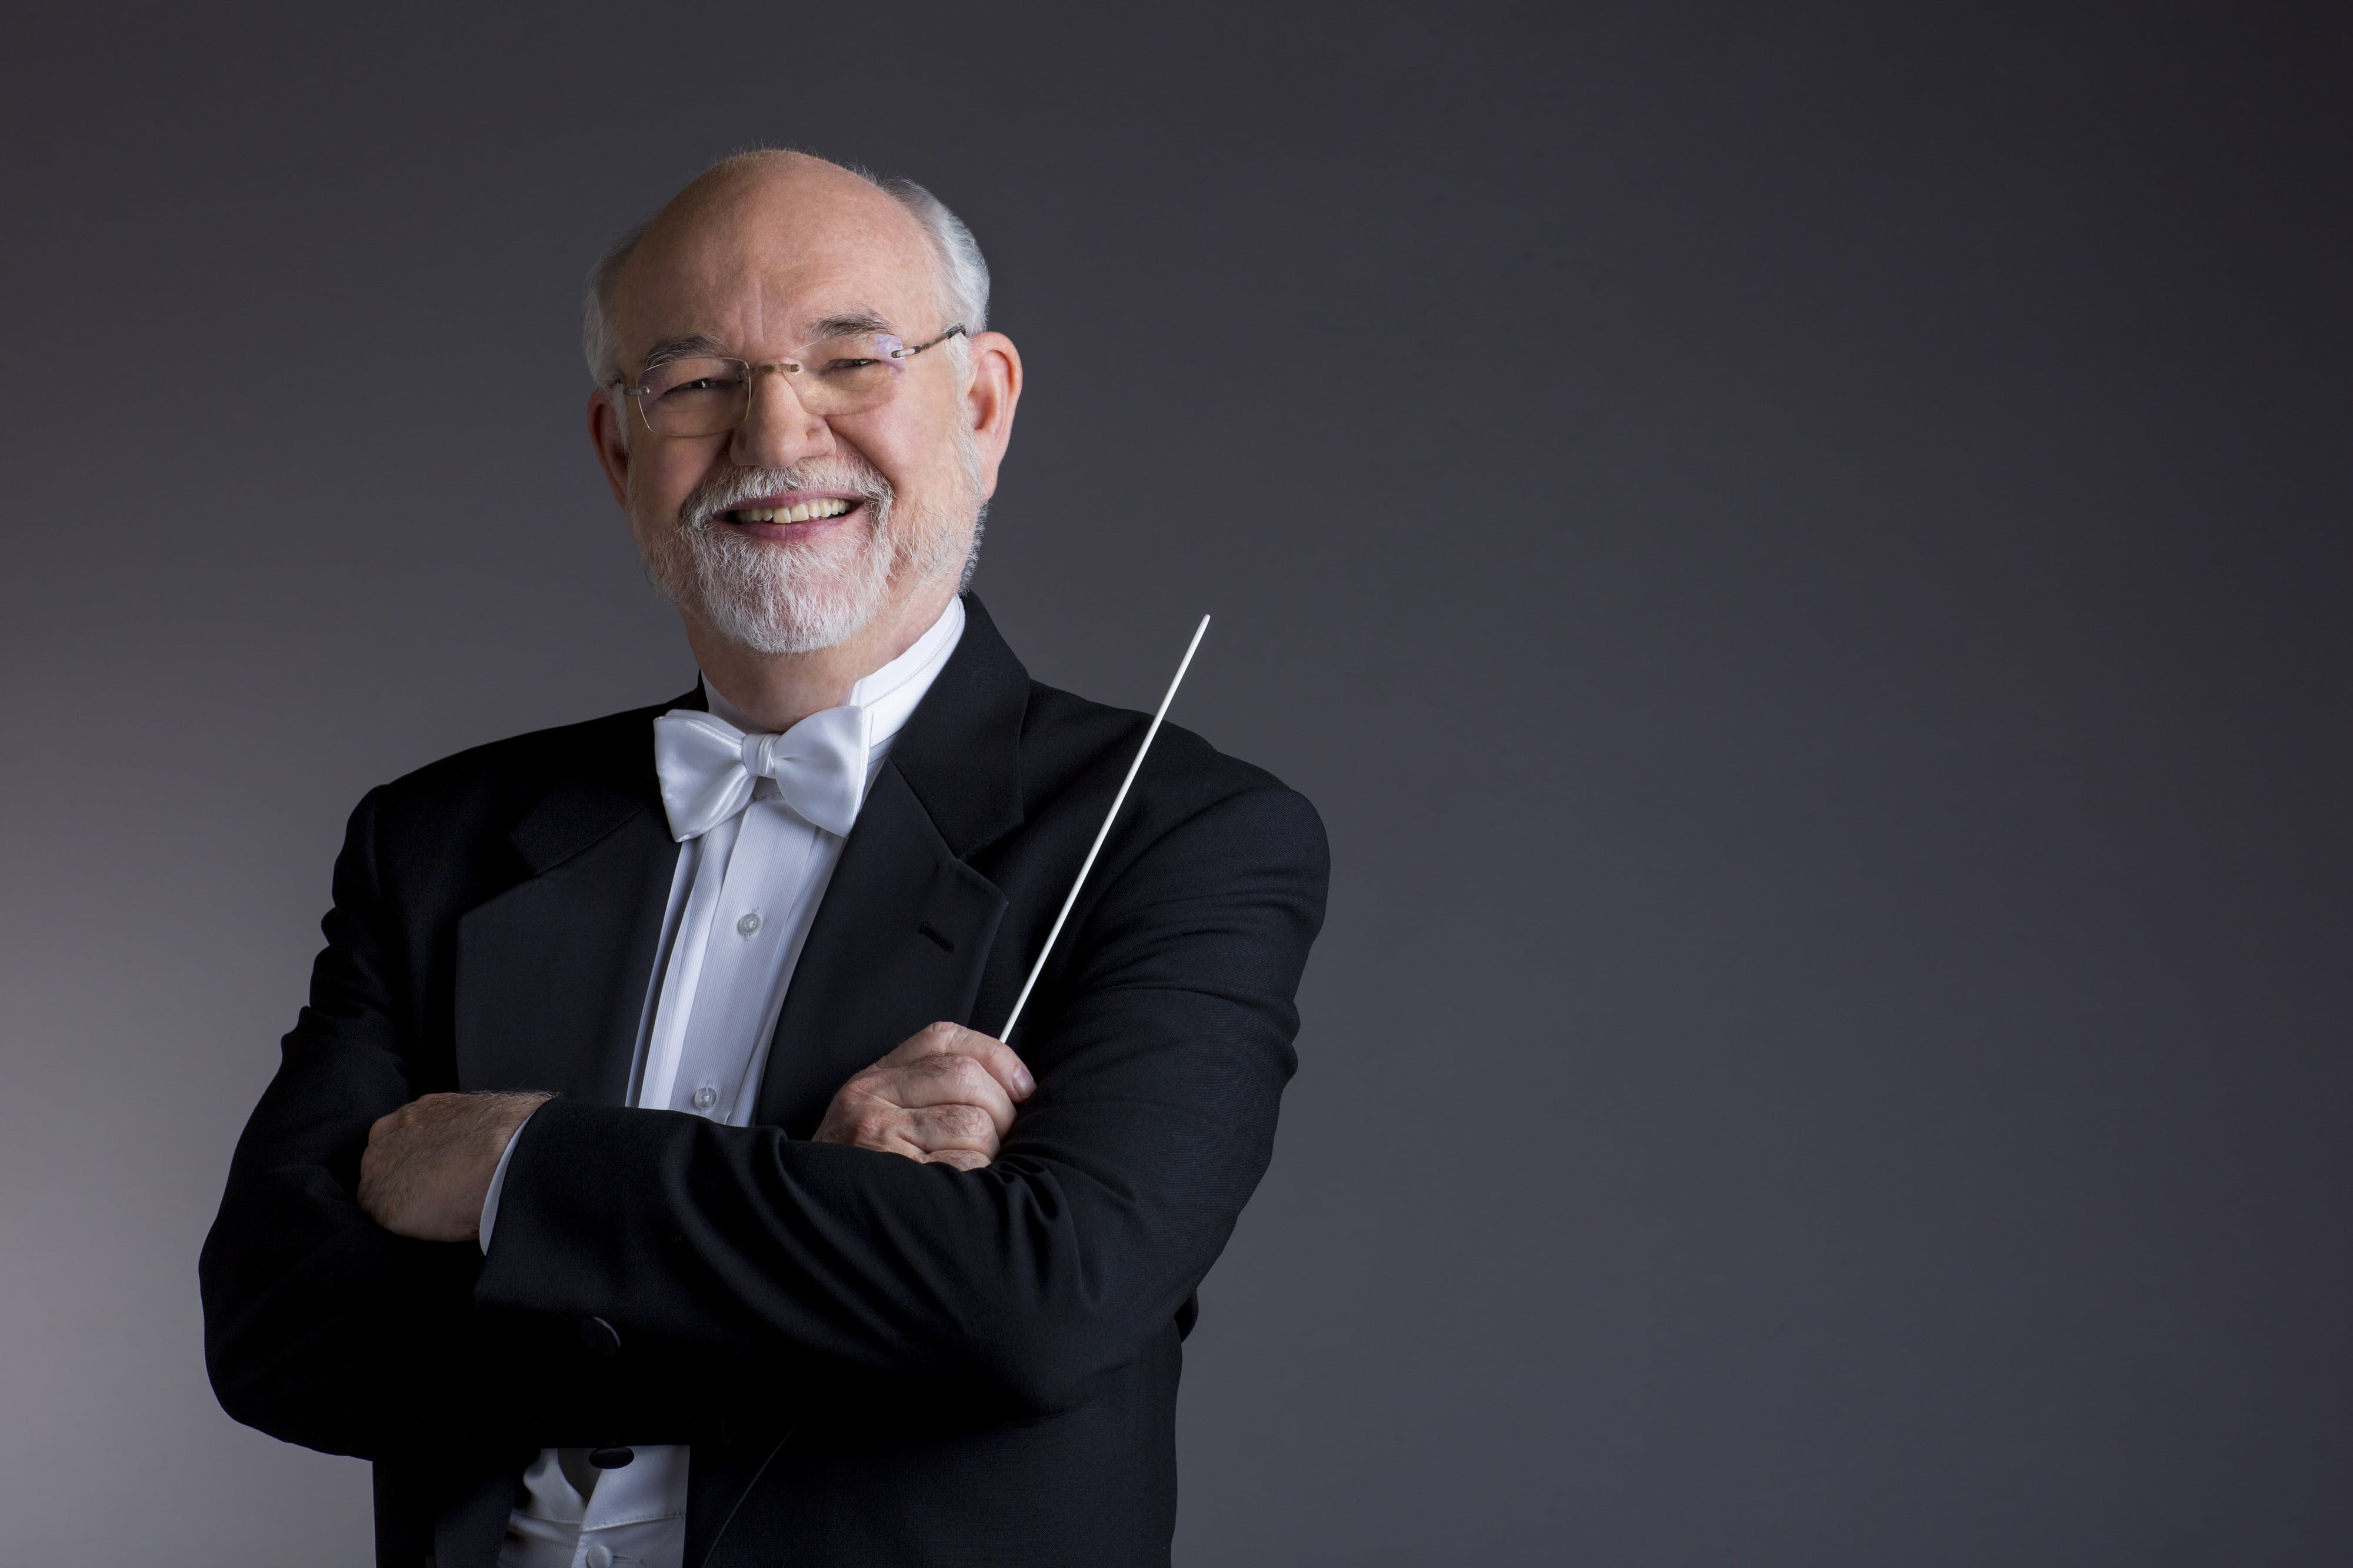 Major change ahead at Chicago Symphony